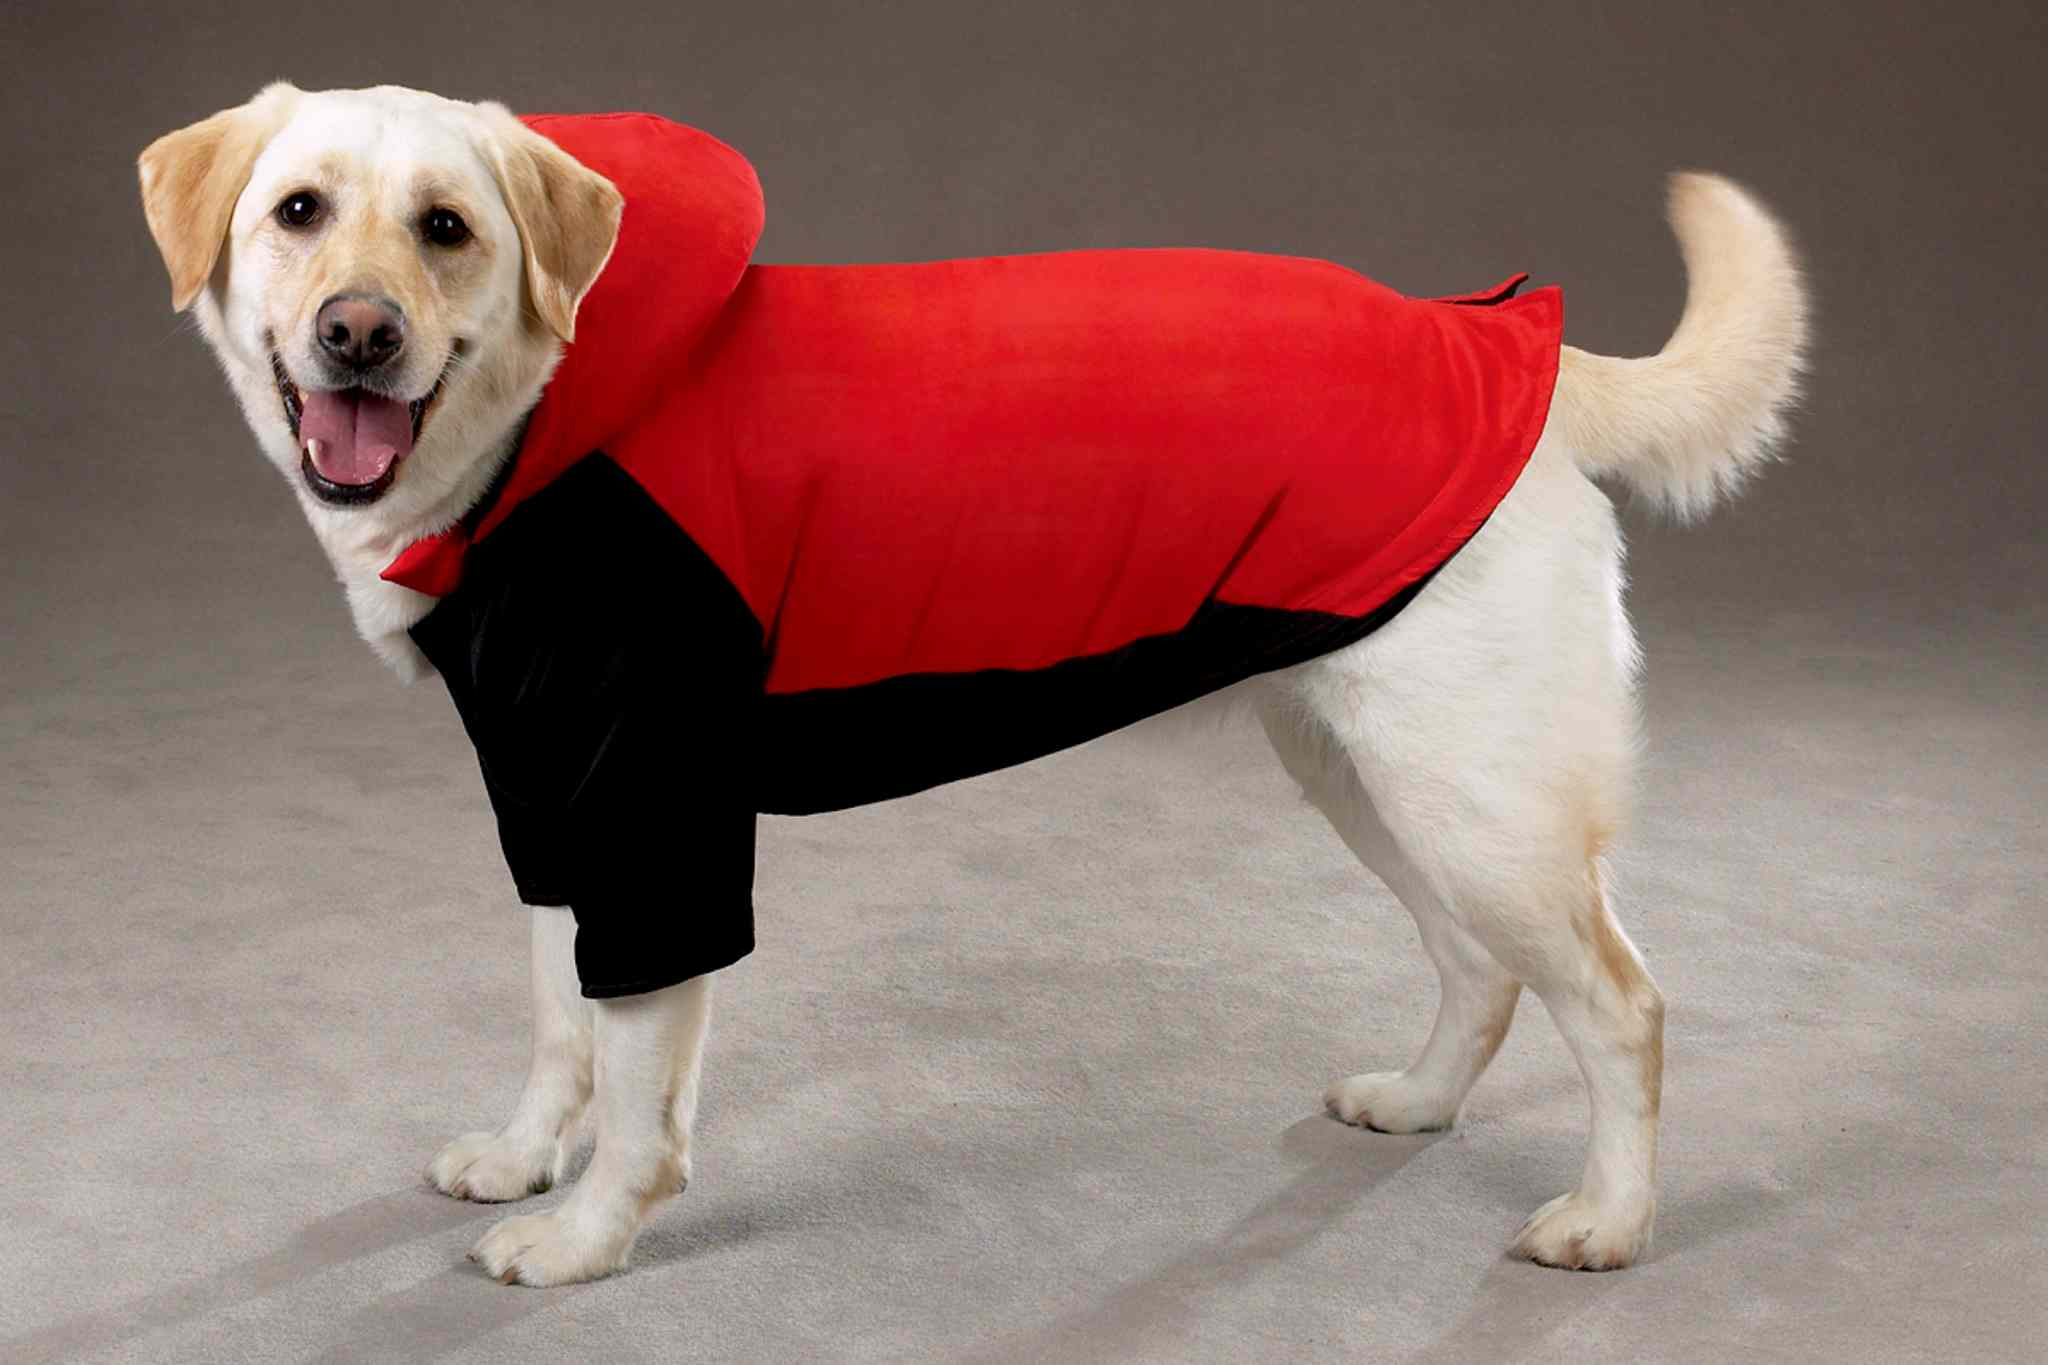 A coat can help short-coated dogs keep warm during the cold winter months.